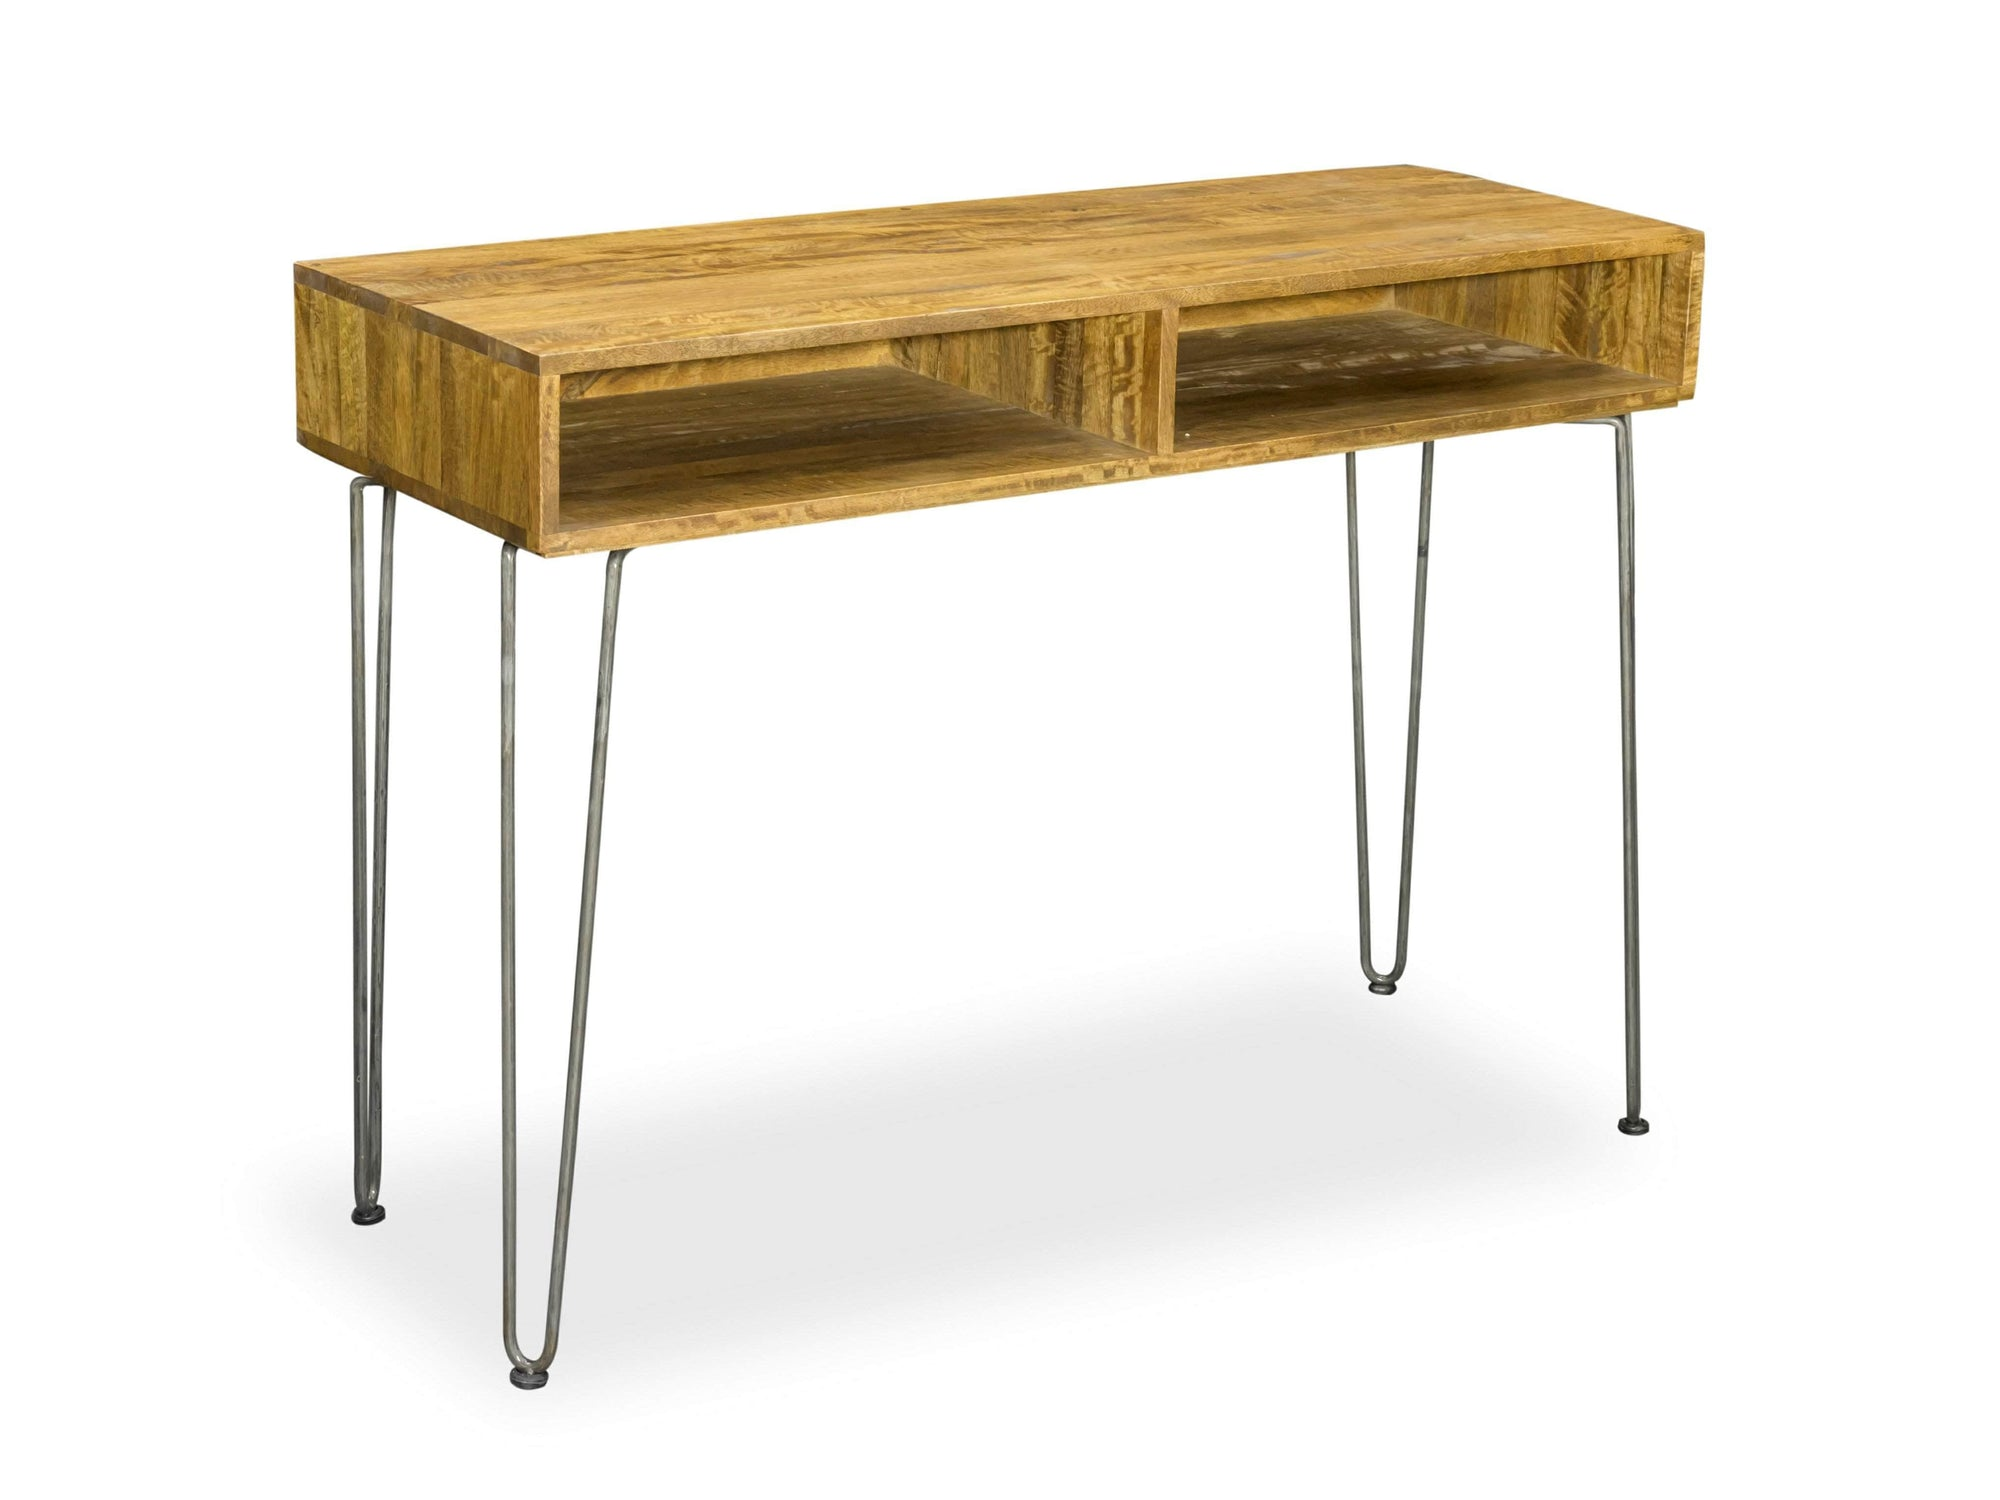 Hallway console table with two compartments for storage, supported by hairpin legs